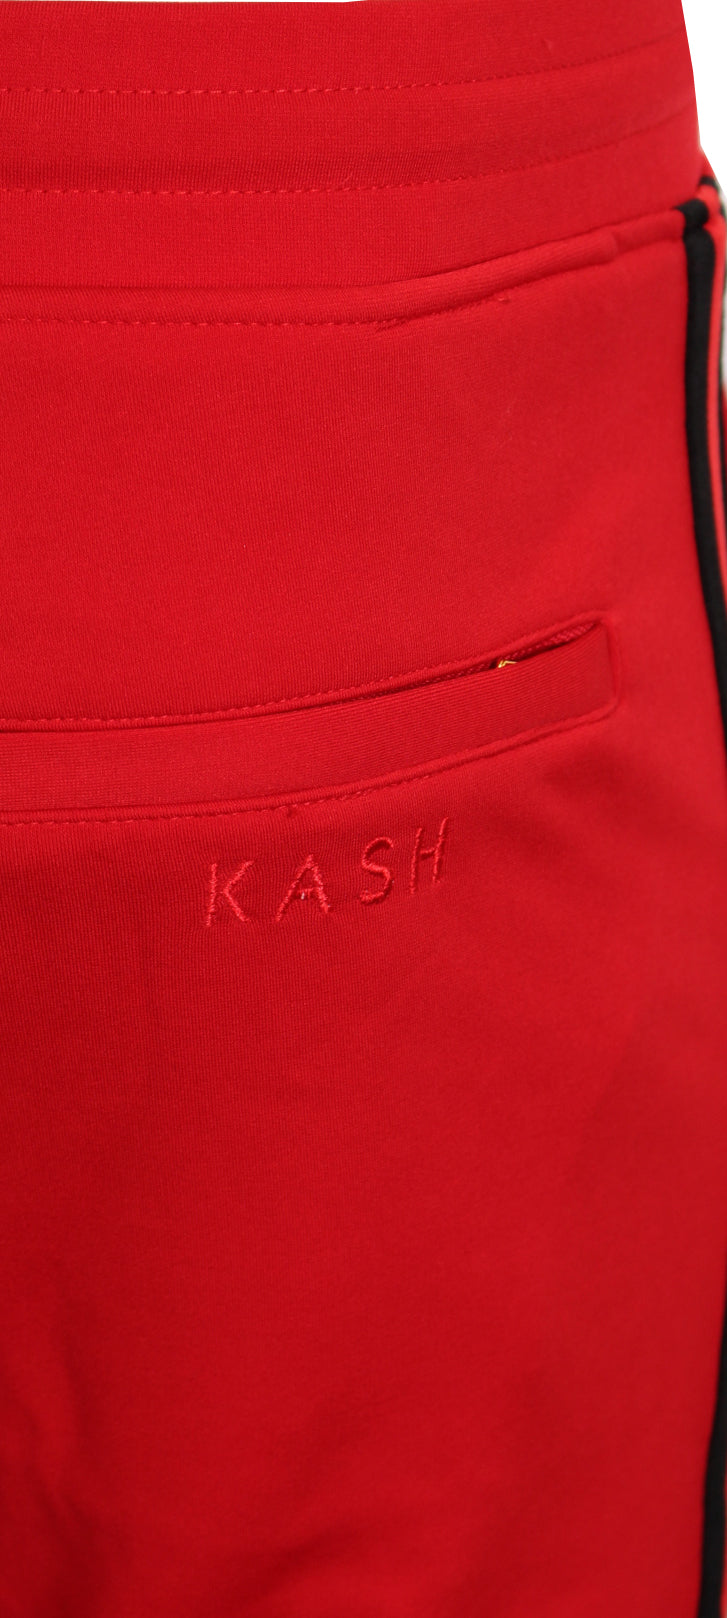 KASH Red and Black Track Pants